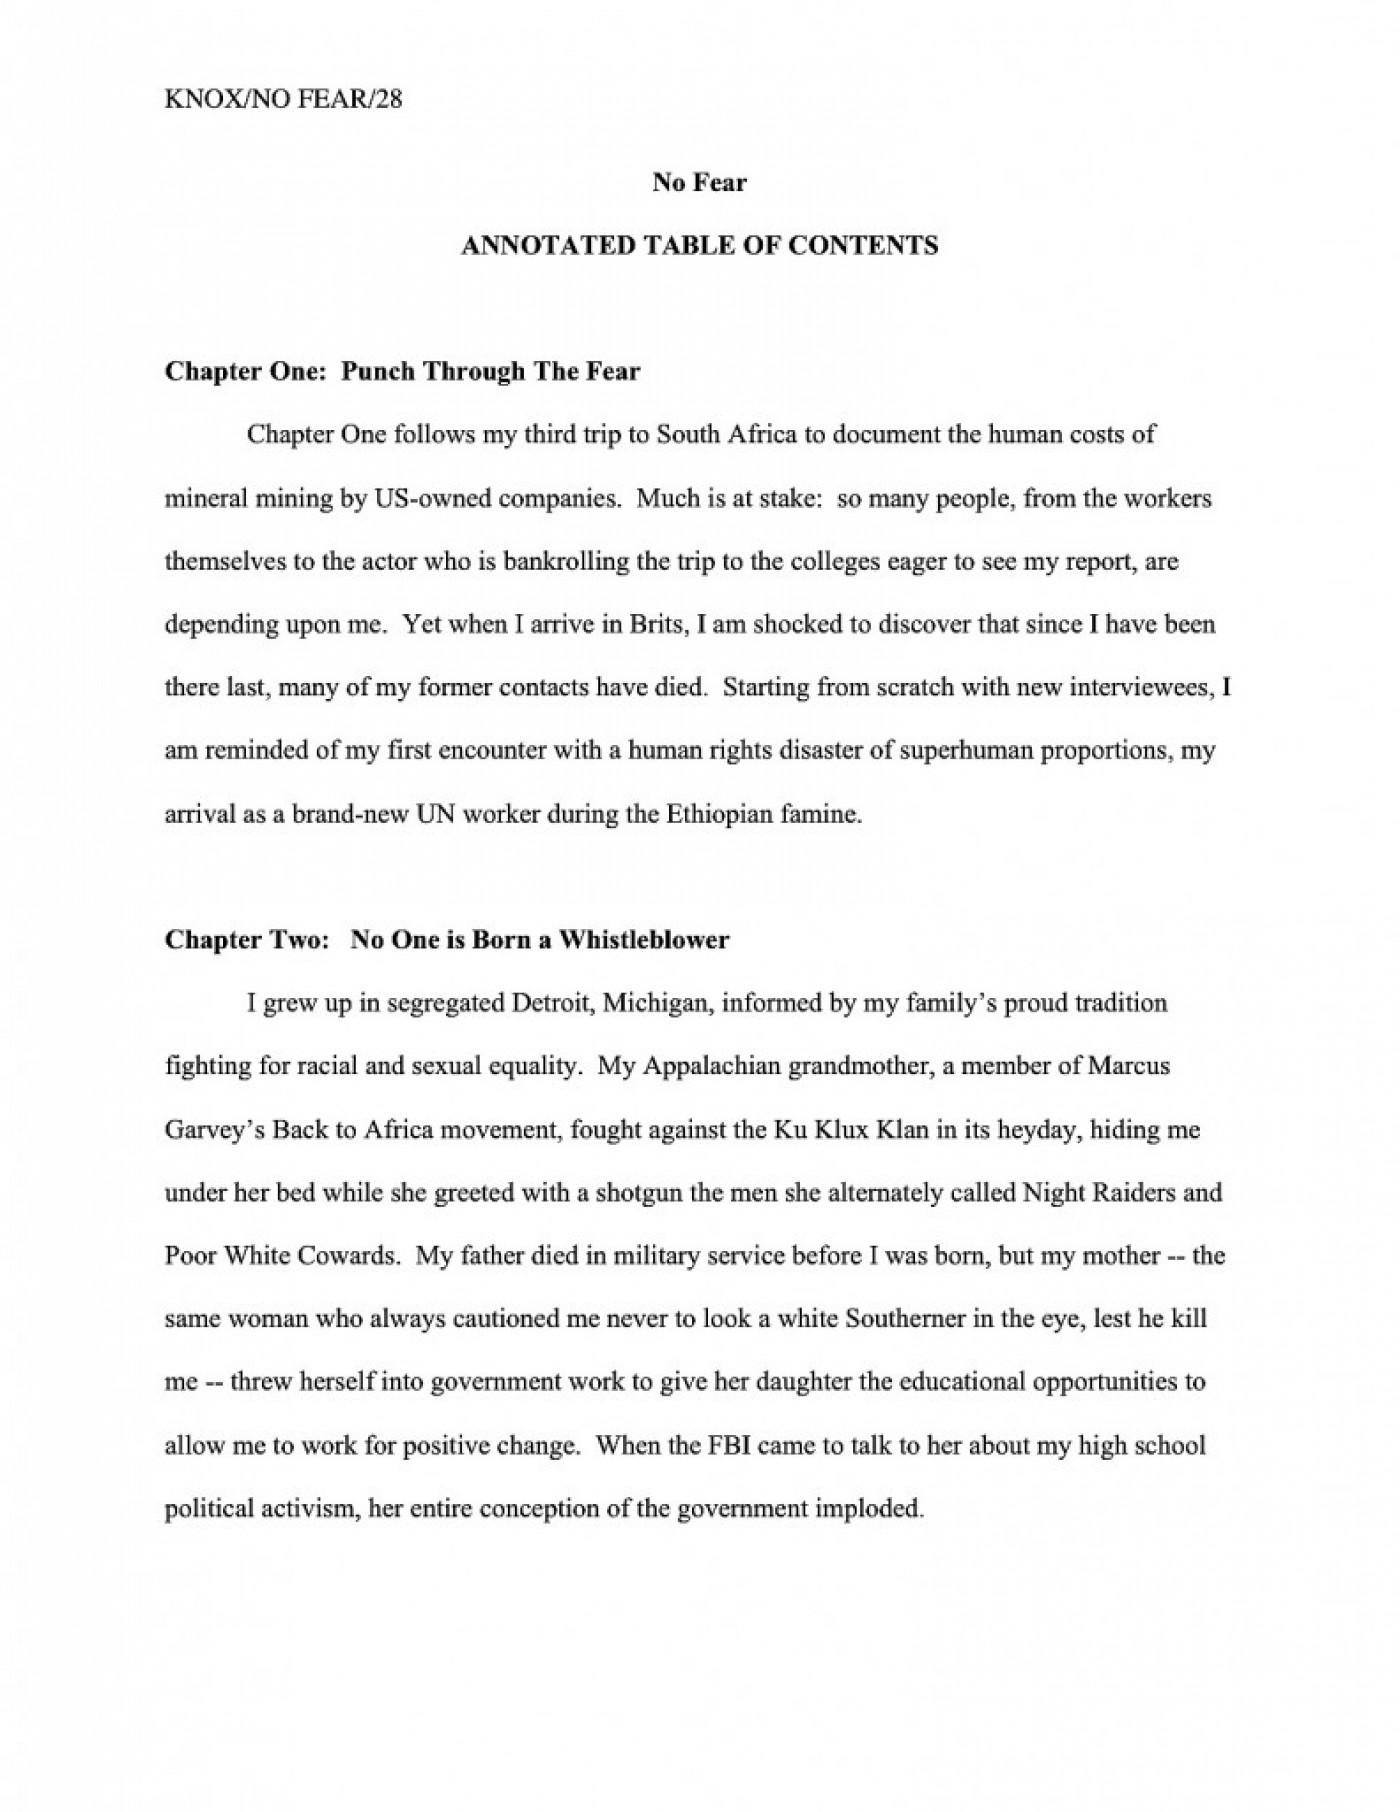 001 Memoir Essays Writing How To Write Annotated Table Of